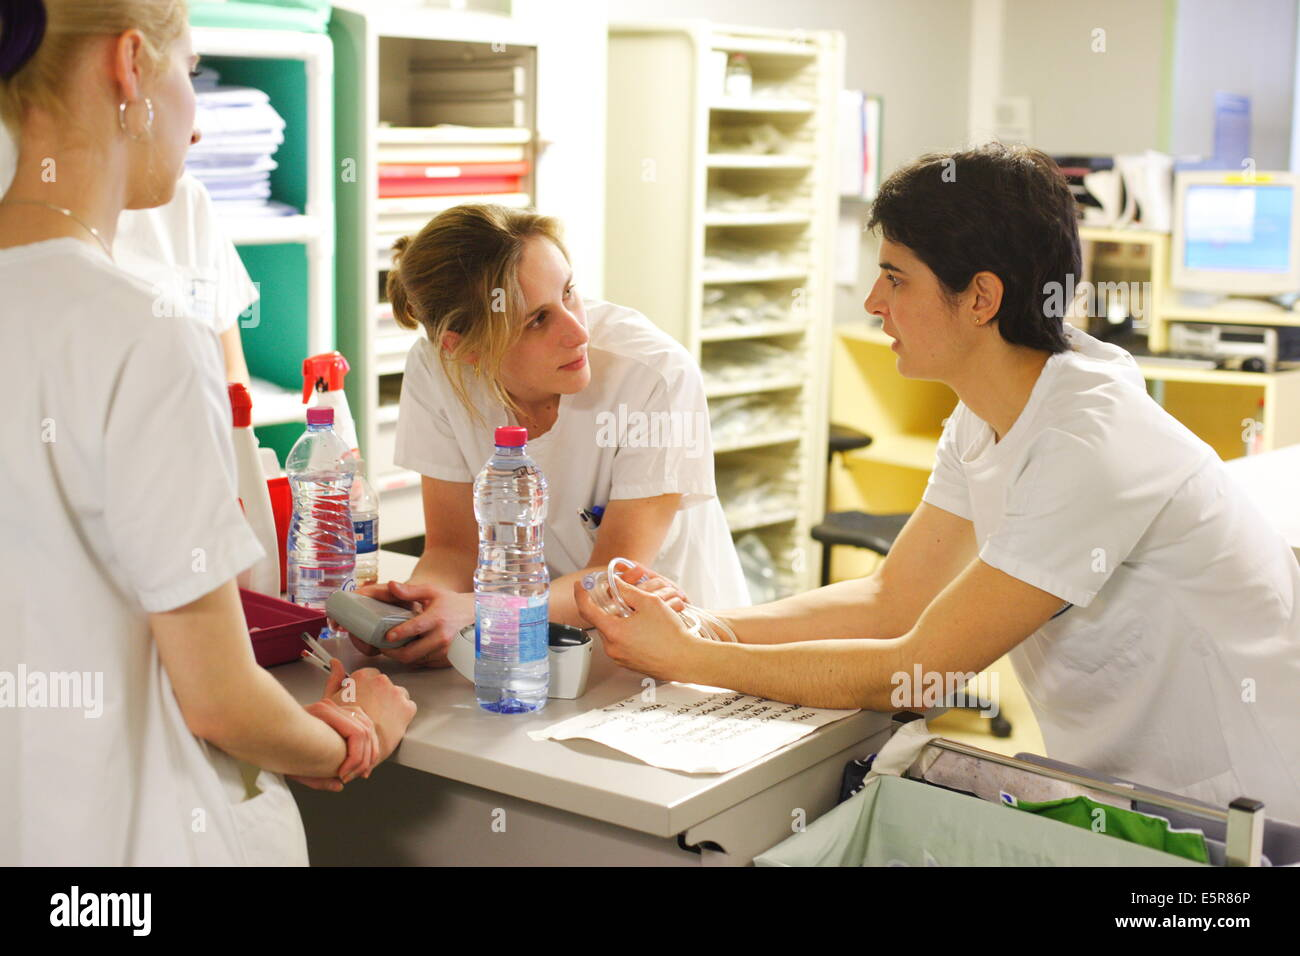 Nurses in the post-intervention room, Reanimation and Anaesthetics Department, Limoges hospital, France. - Stock Image